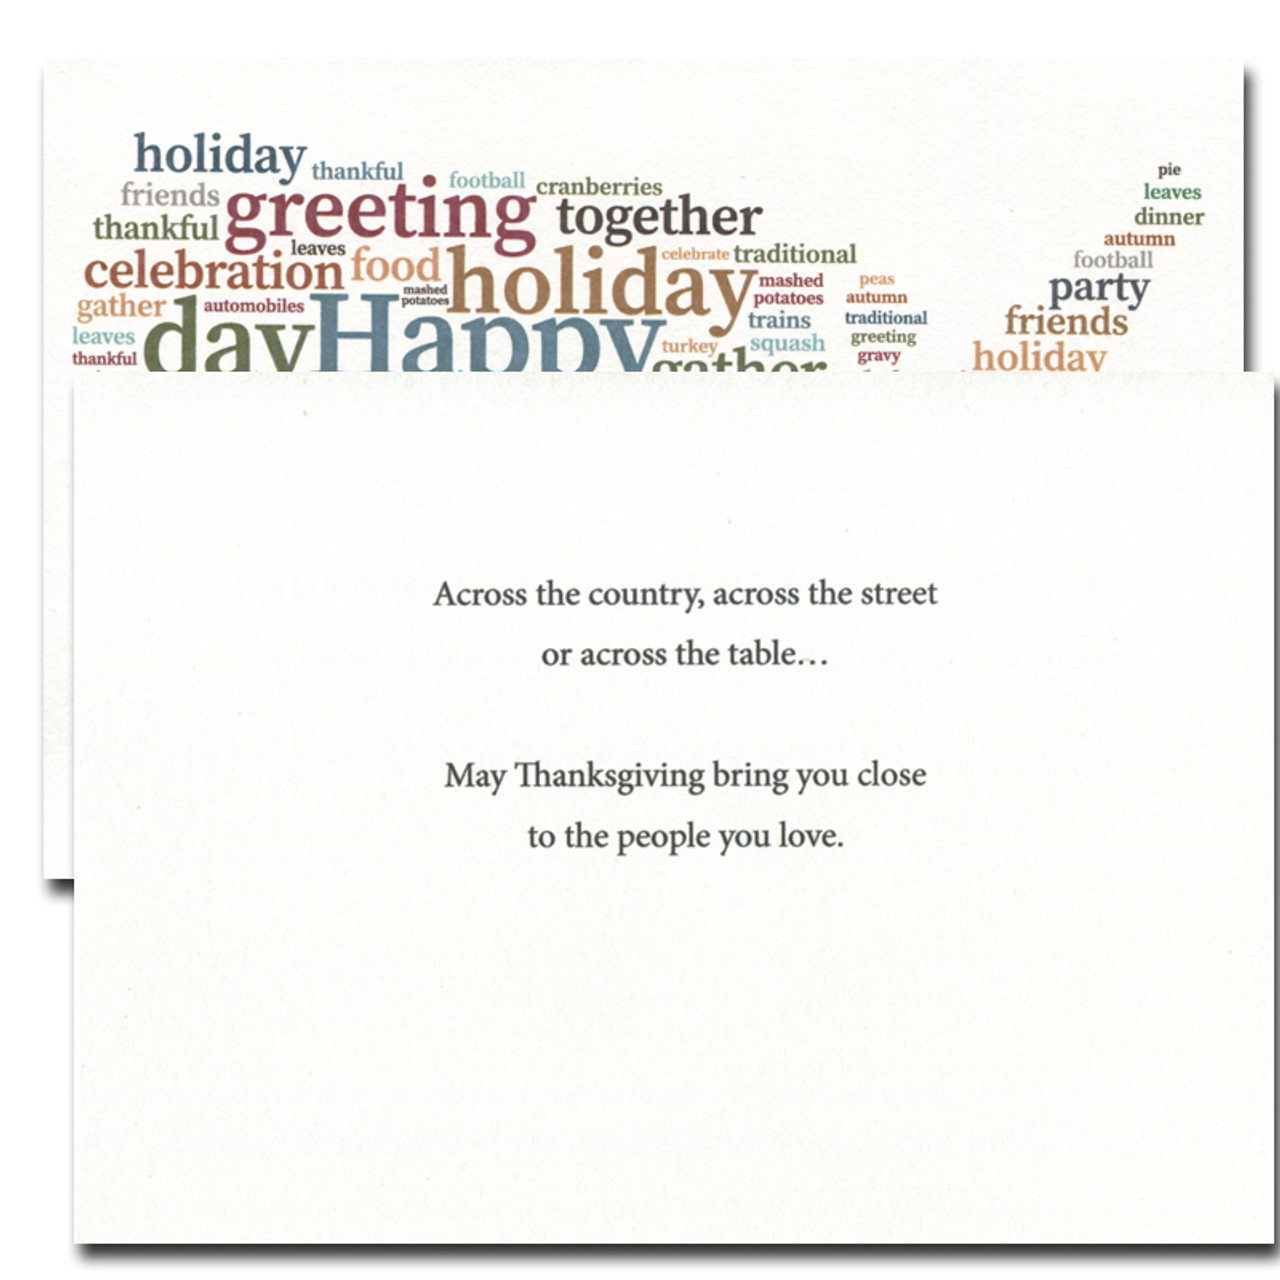 Inside of Across the Country card reads: Across the country, across the street or across the table. . .May Thanksgiving bring you close to the people you love.